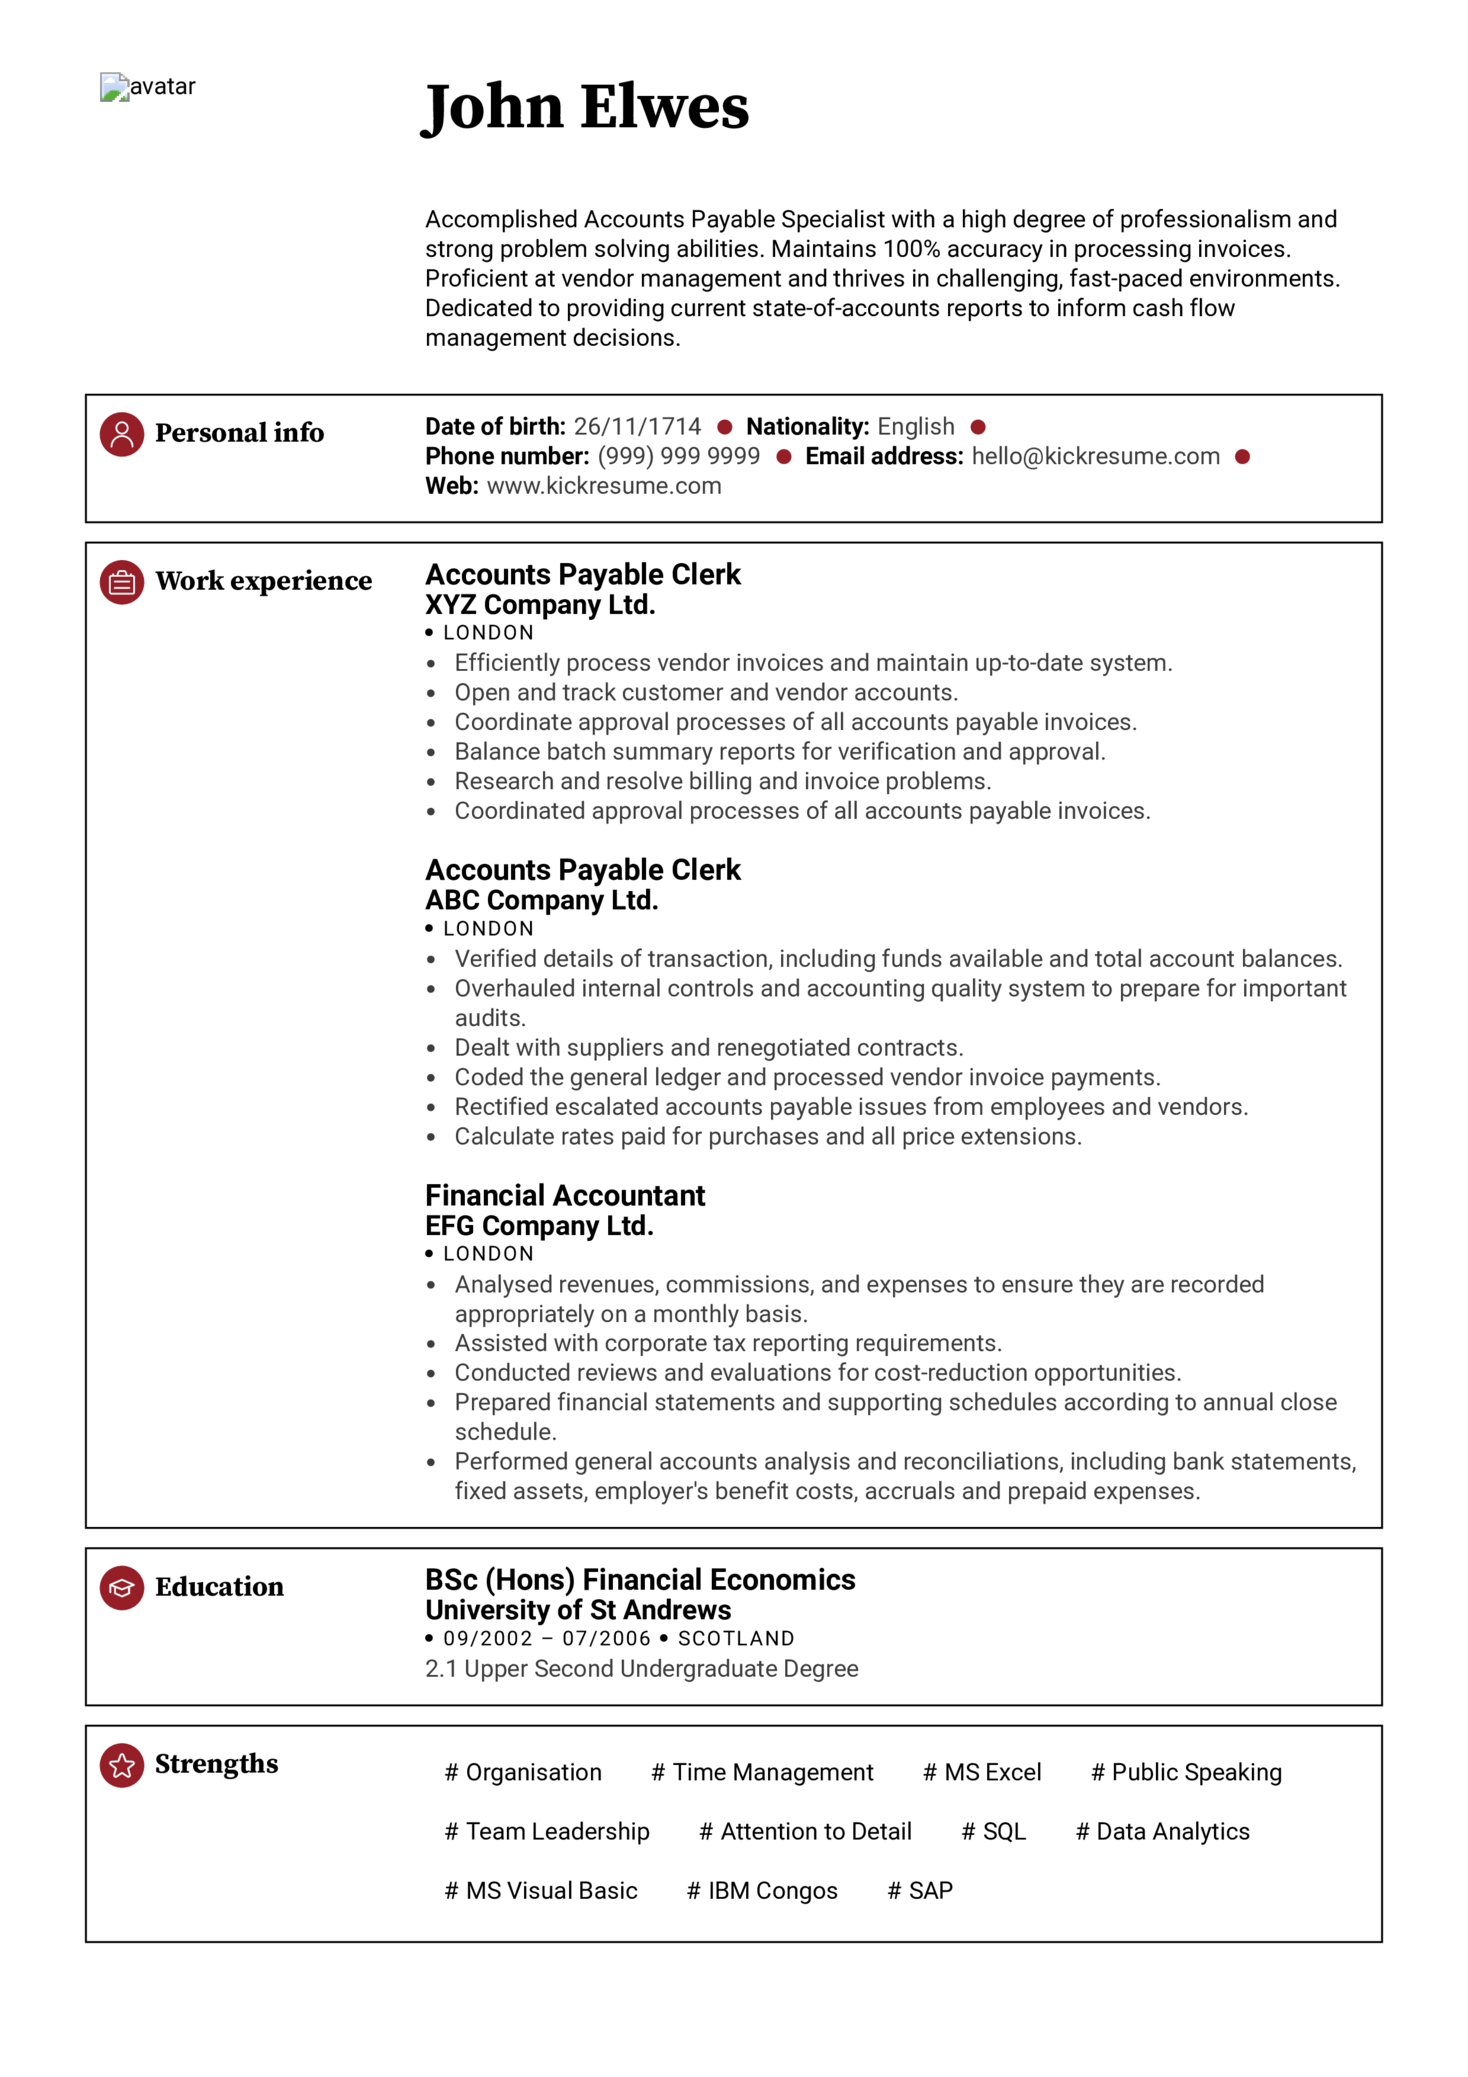 Senior accountant resume sample resume samples career help center senior accountant resume sample thecheapjerseys